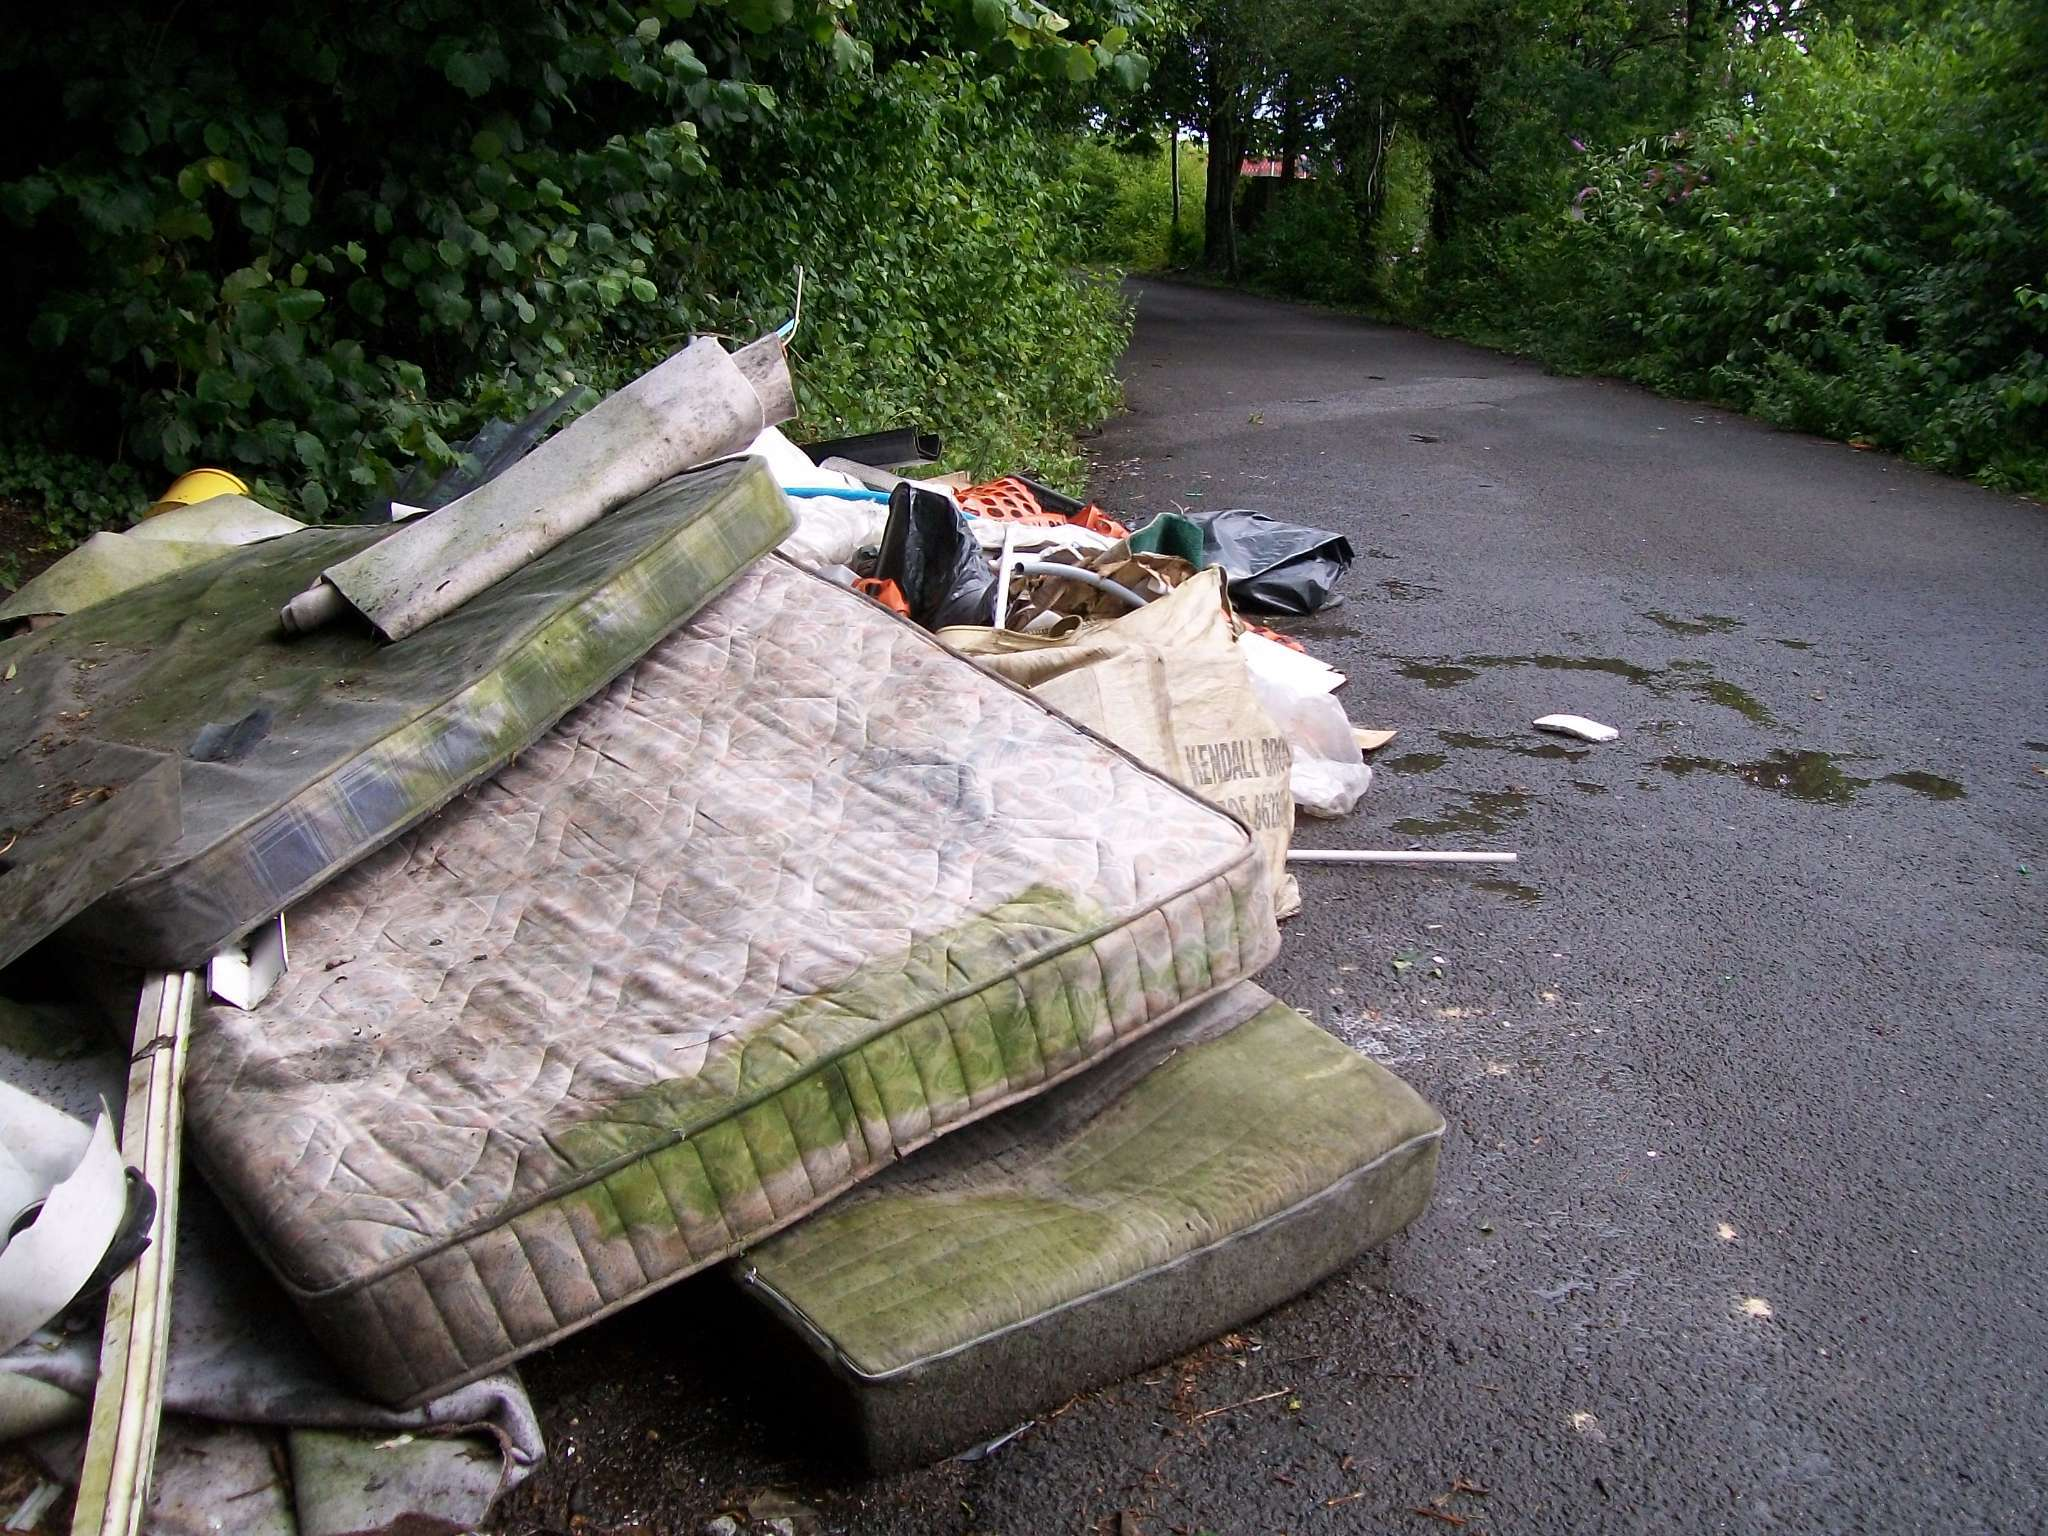 Fly-tipping is becoming an increasing problem